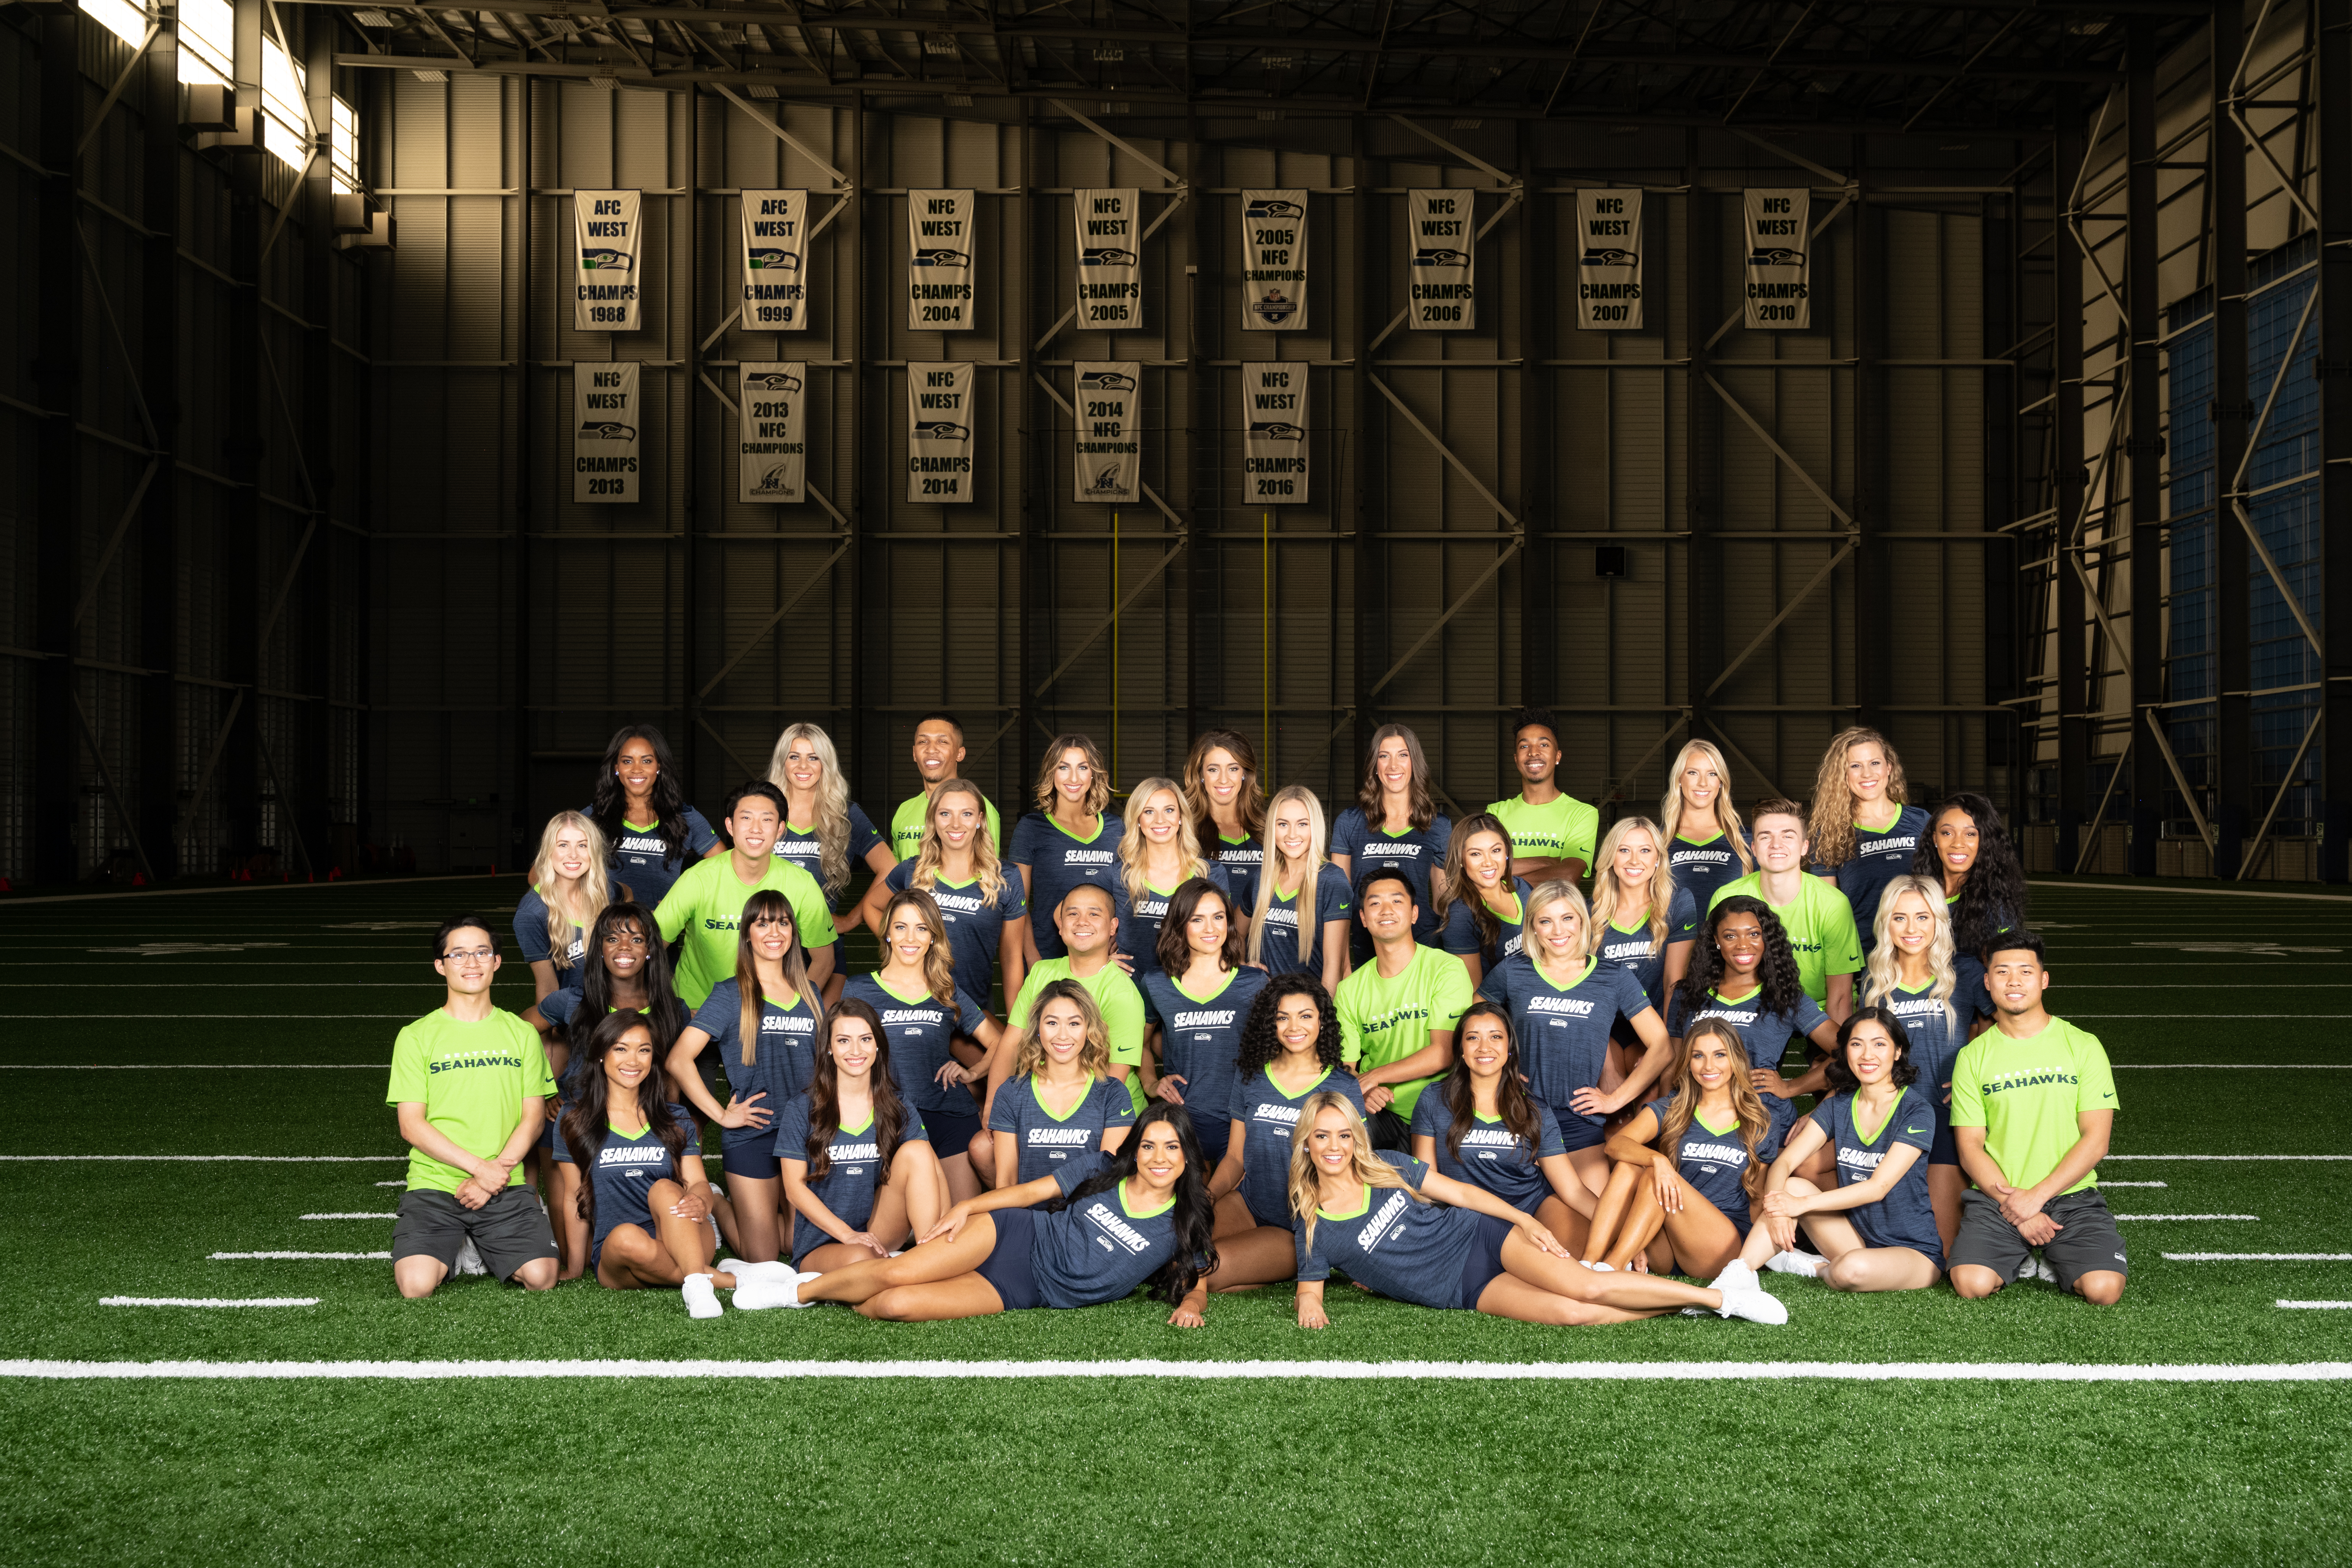 "<p>For decades the Sea Gals have been gracing the field alongside our Hawks on gamedays - but moving forward, they will be no more! Instead, meet The Seahawks Dancers, a group of female and male dancers who will be hitting the field for the 2019/2020 season showcasing many different types of dance style. Director Courtney Moore says this change is in an effort to ""continually look to evolve our gameday entertainment"". Hello Dancers, we can't WAIT to see what you have in store for us! (Image: Seattle Seahawks){&nbsp;}</p>"